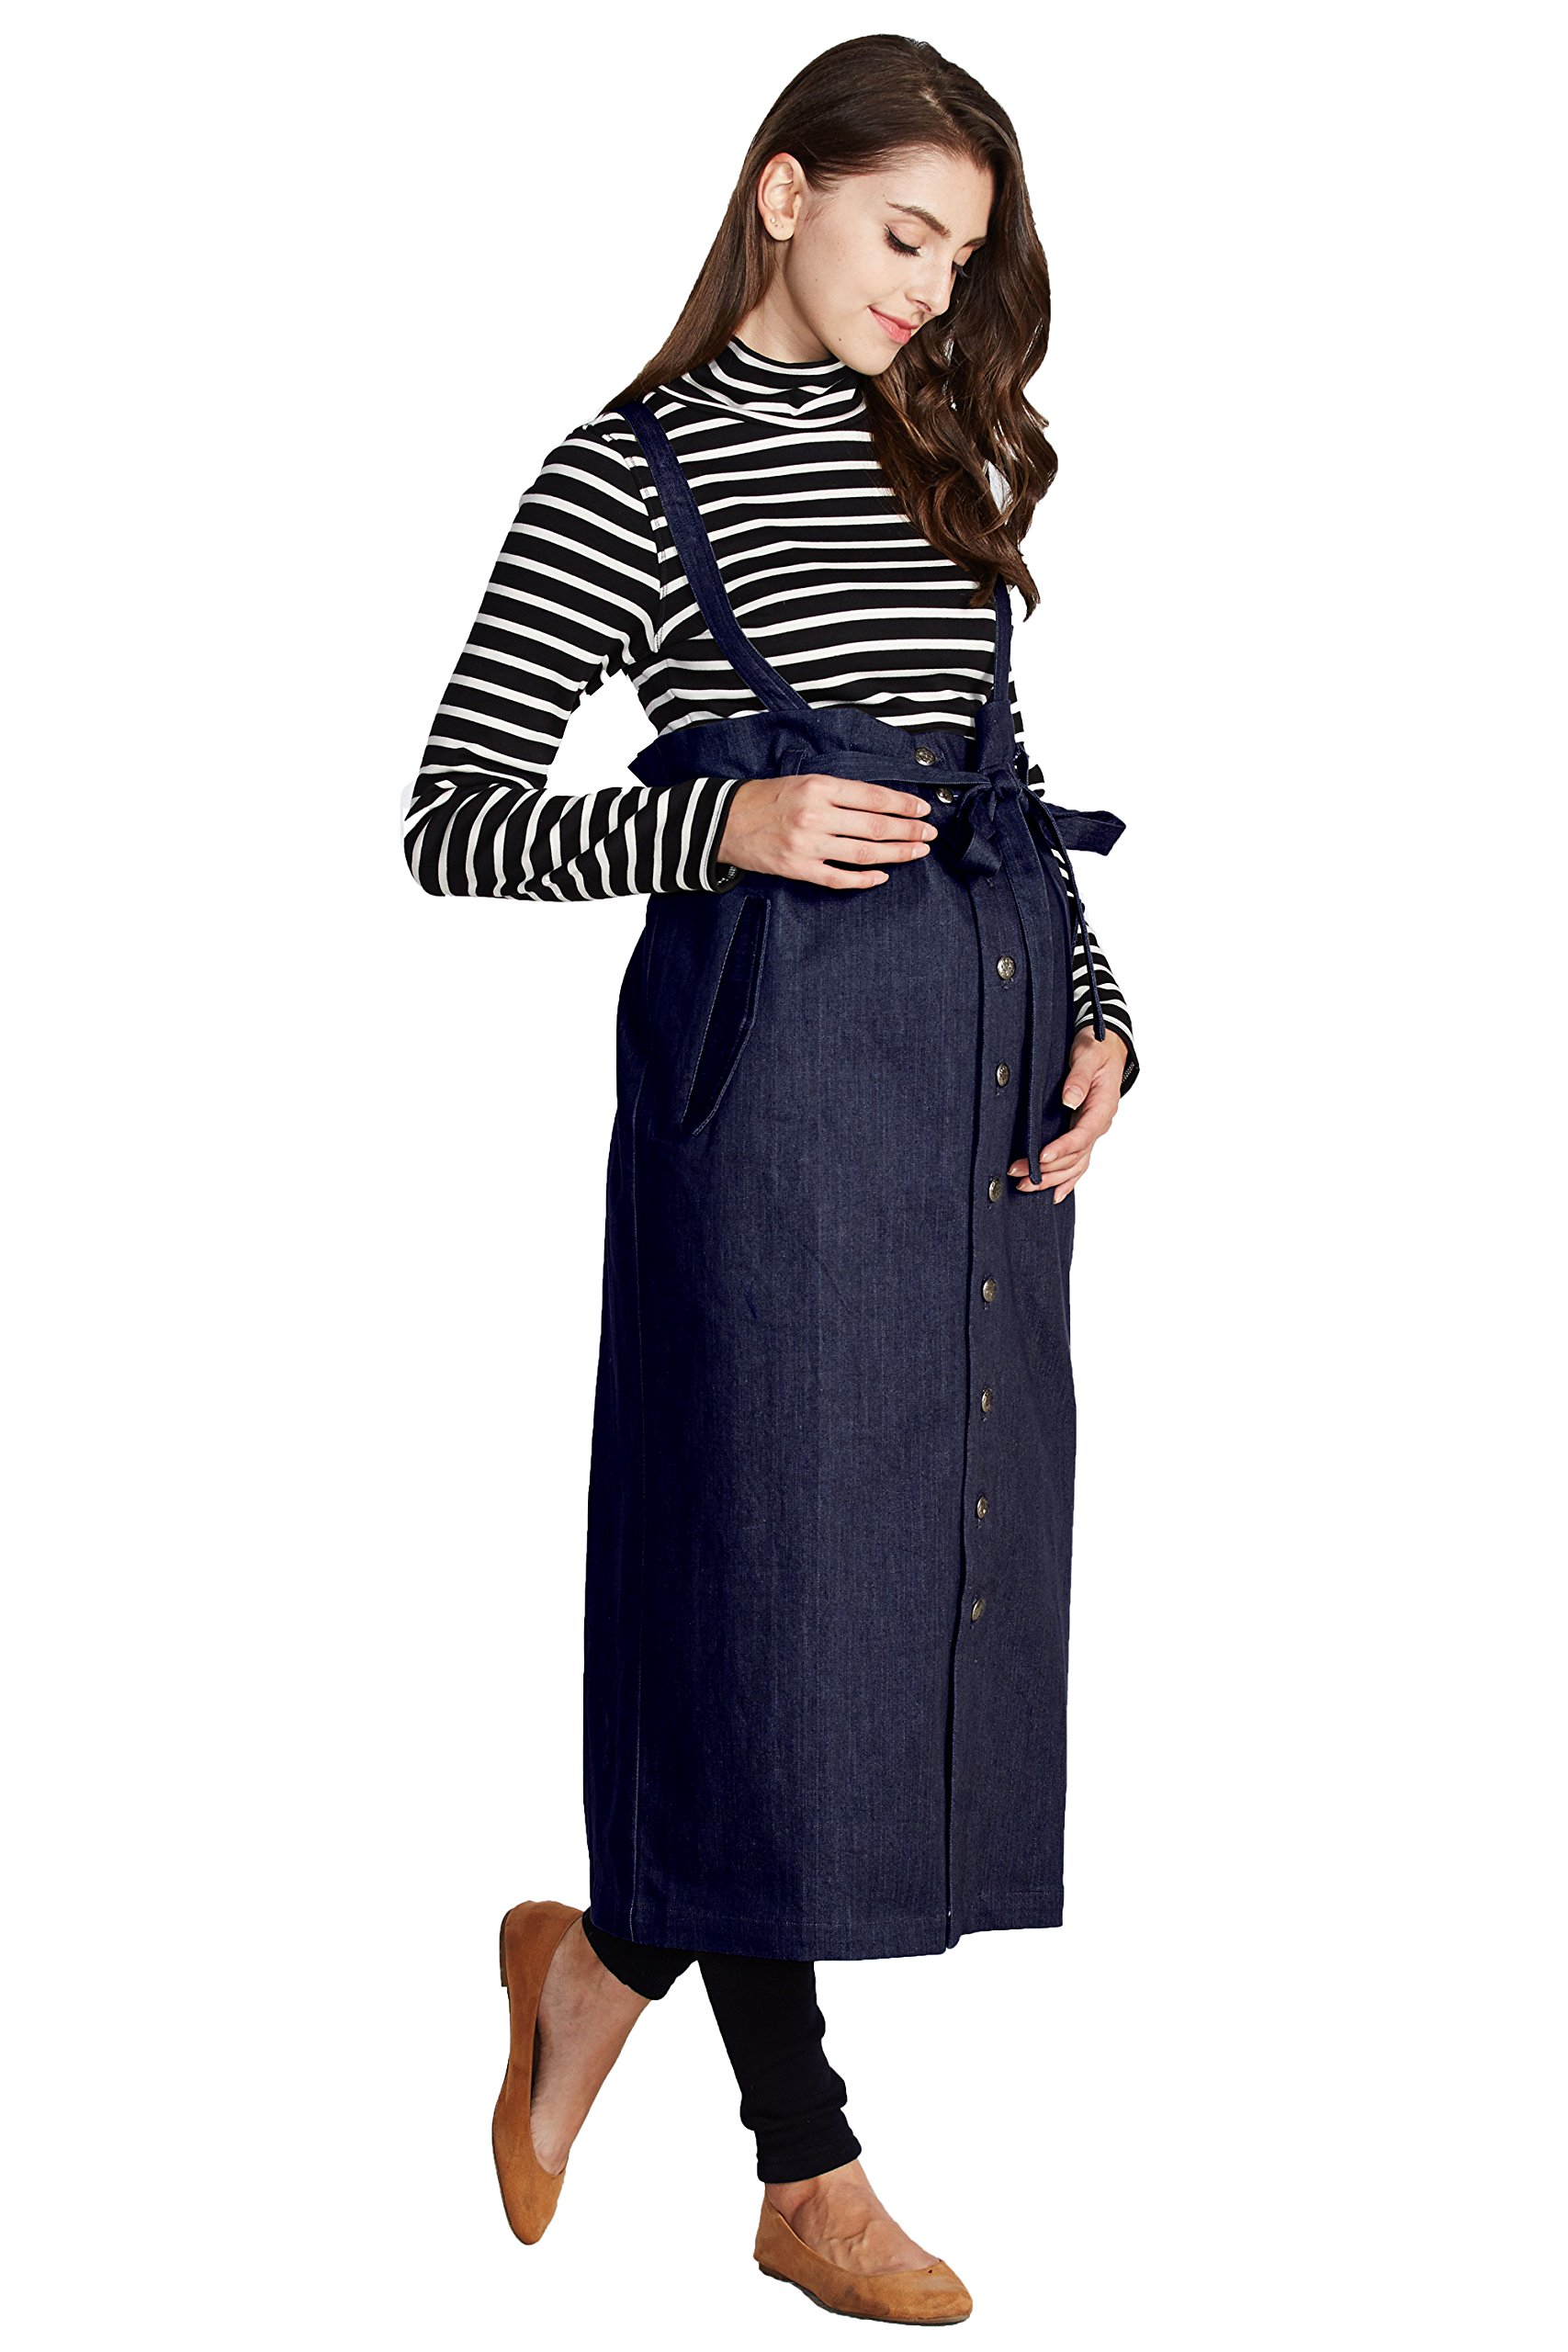 Sweet Mommy Maternity Maxi Jeans Skirt With Suspenders Straps (F, Navy)